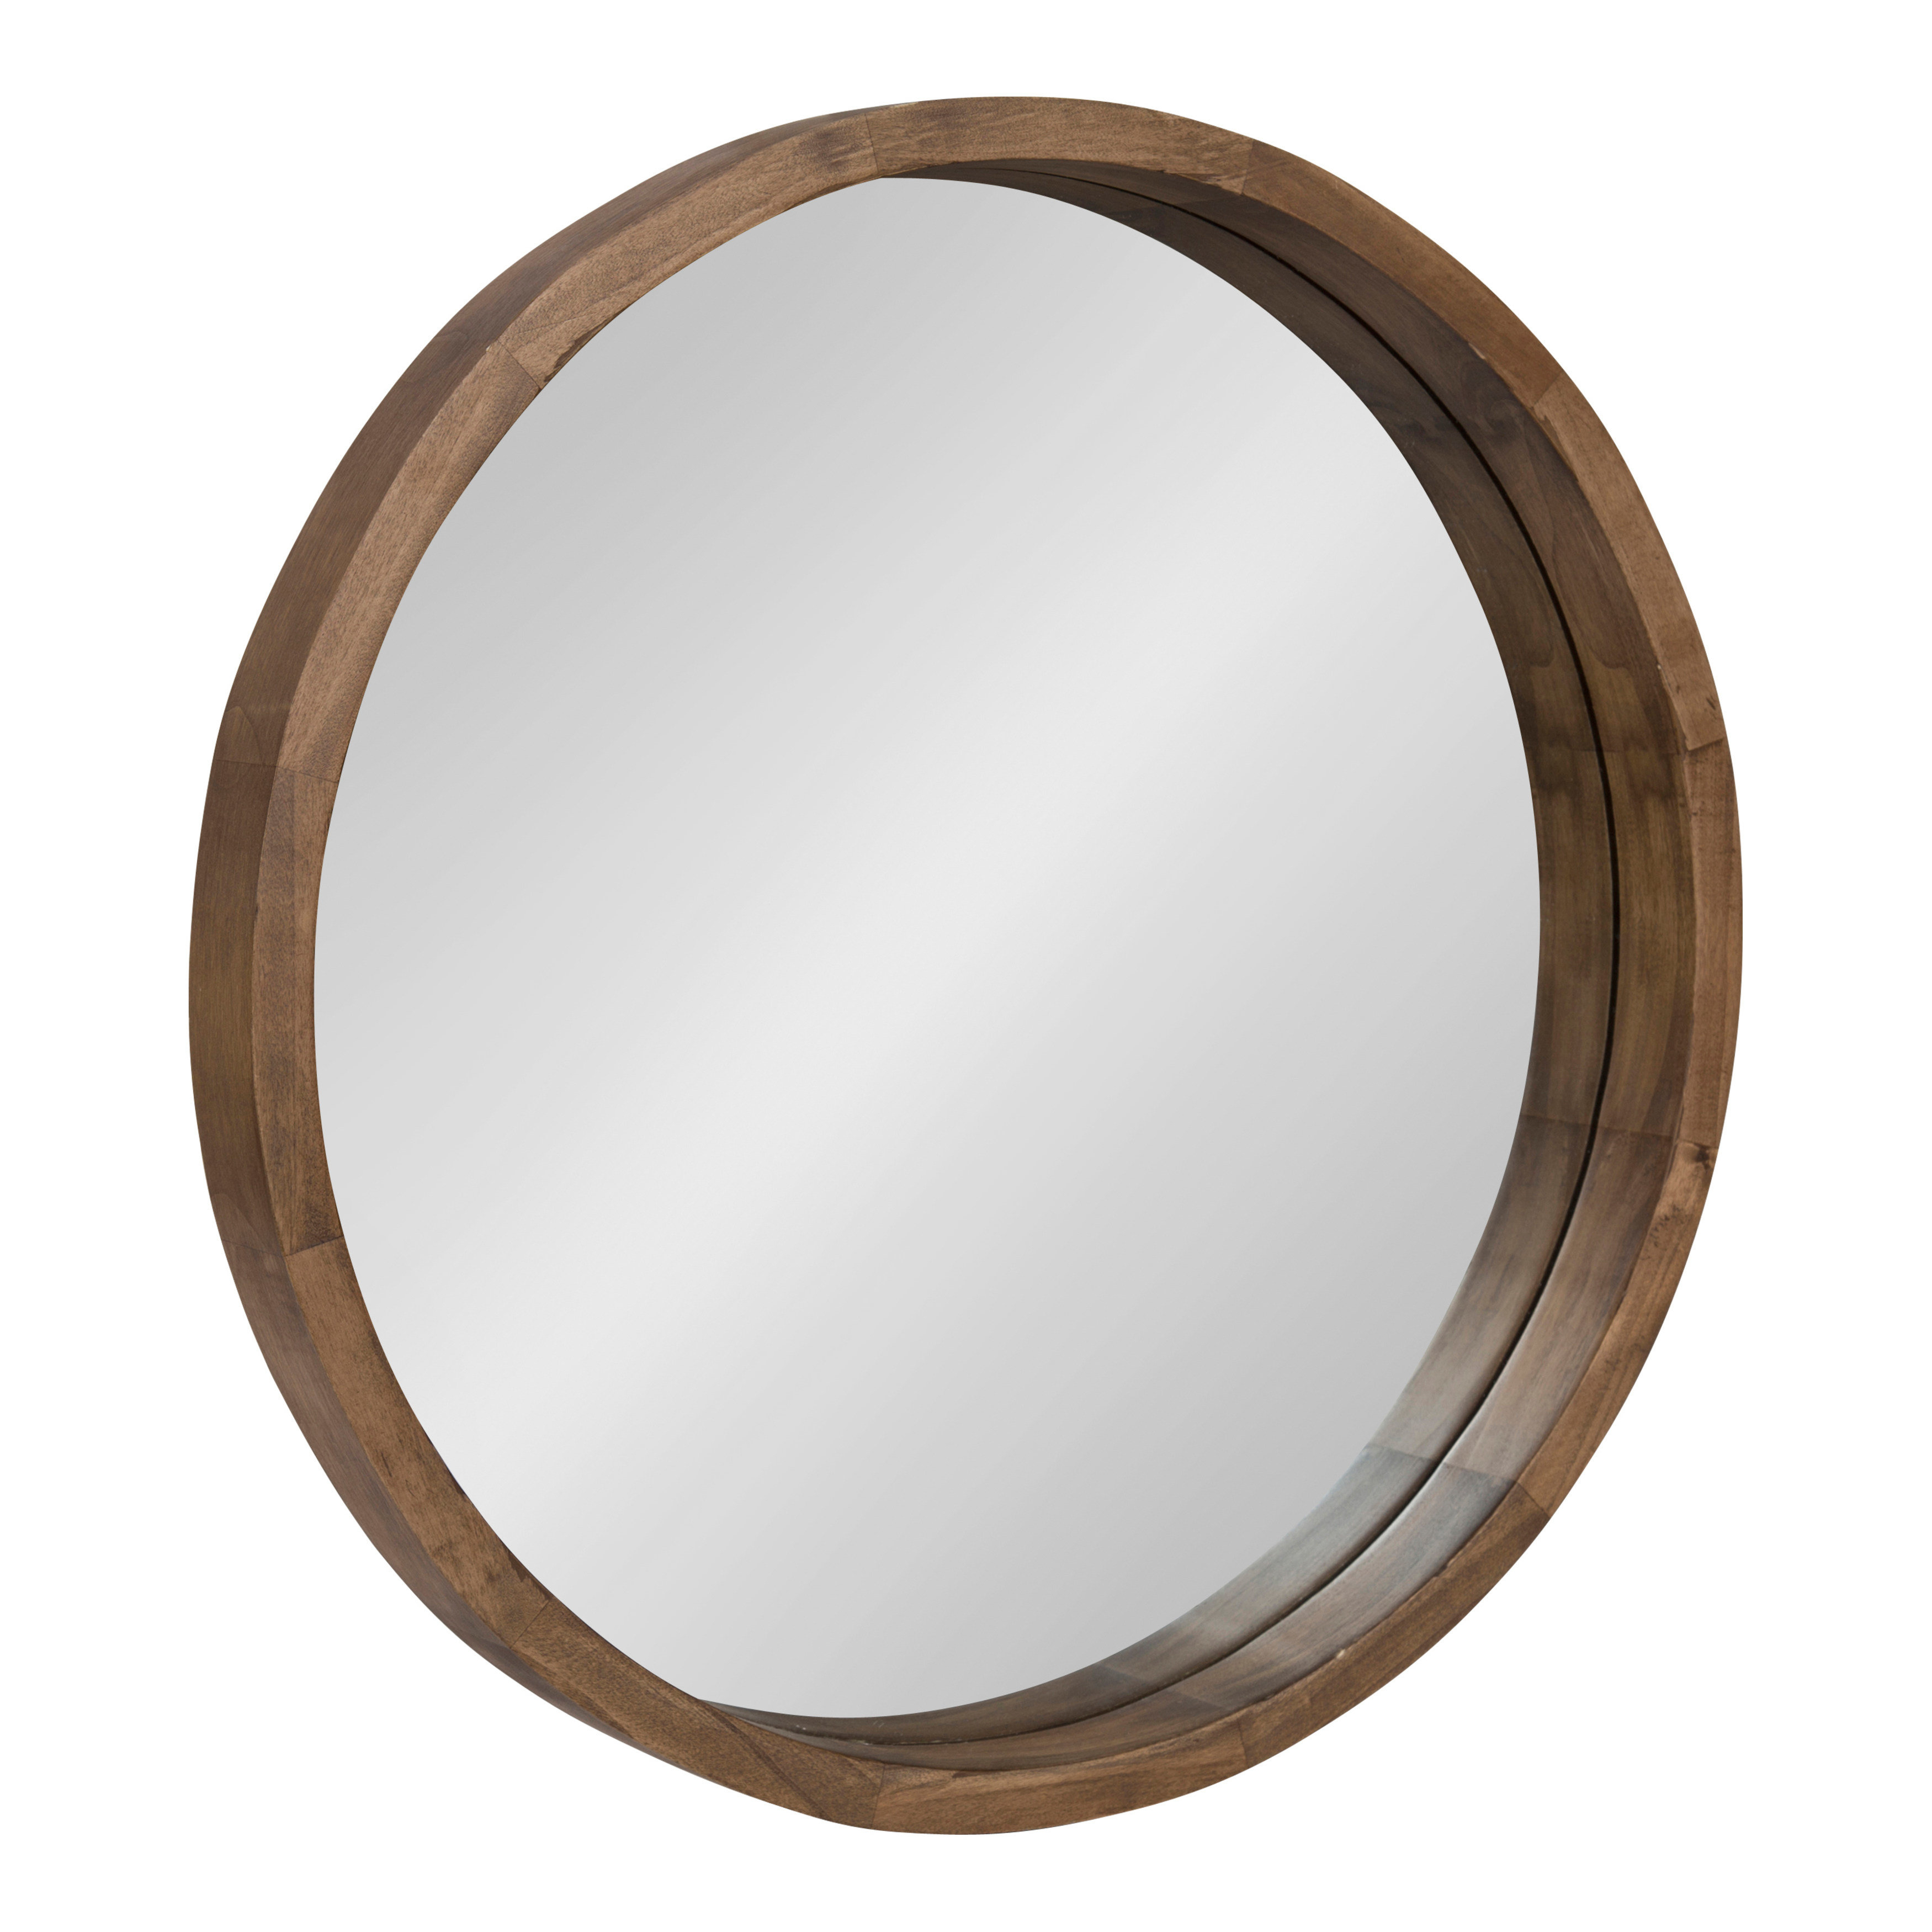 Loftis Decorative Wall Mirror pertaining to Swagger Accent Wall Mirrors (Image 18 of 30)